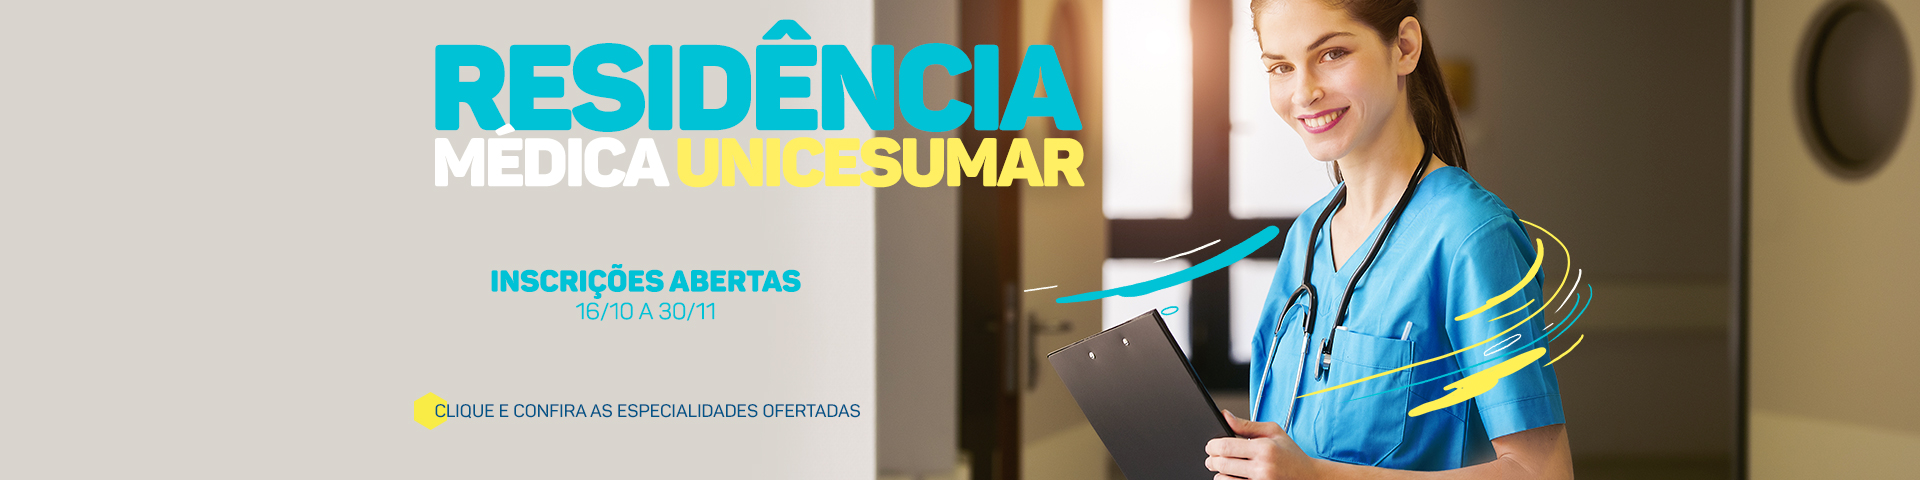 residencia-medica-2018-banner-home_1920x480px